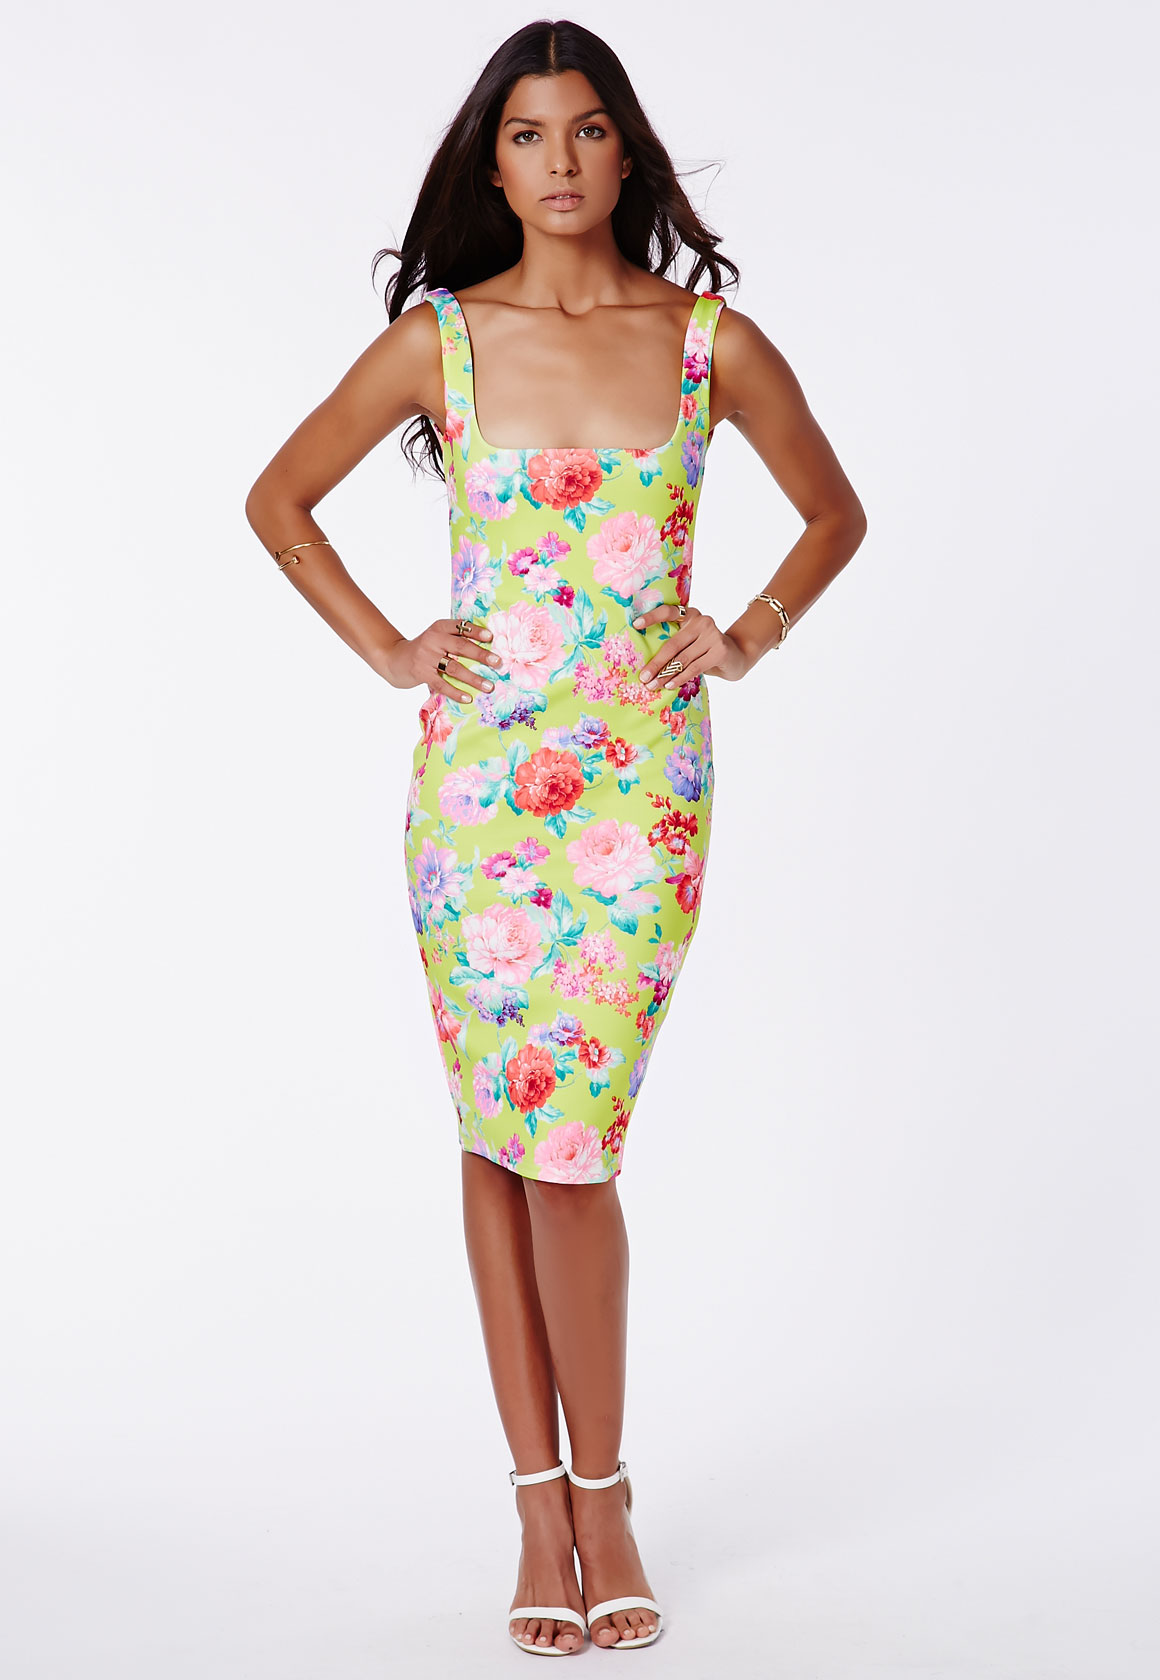 Floral Print Bodycon Midi Dress - Size 6